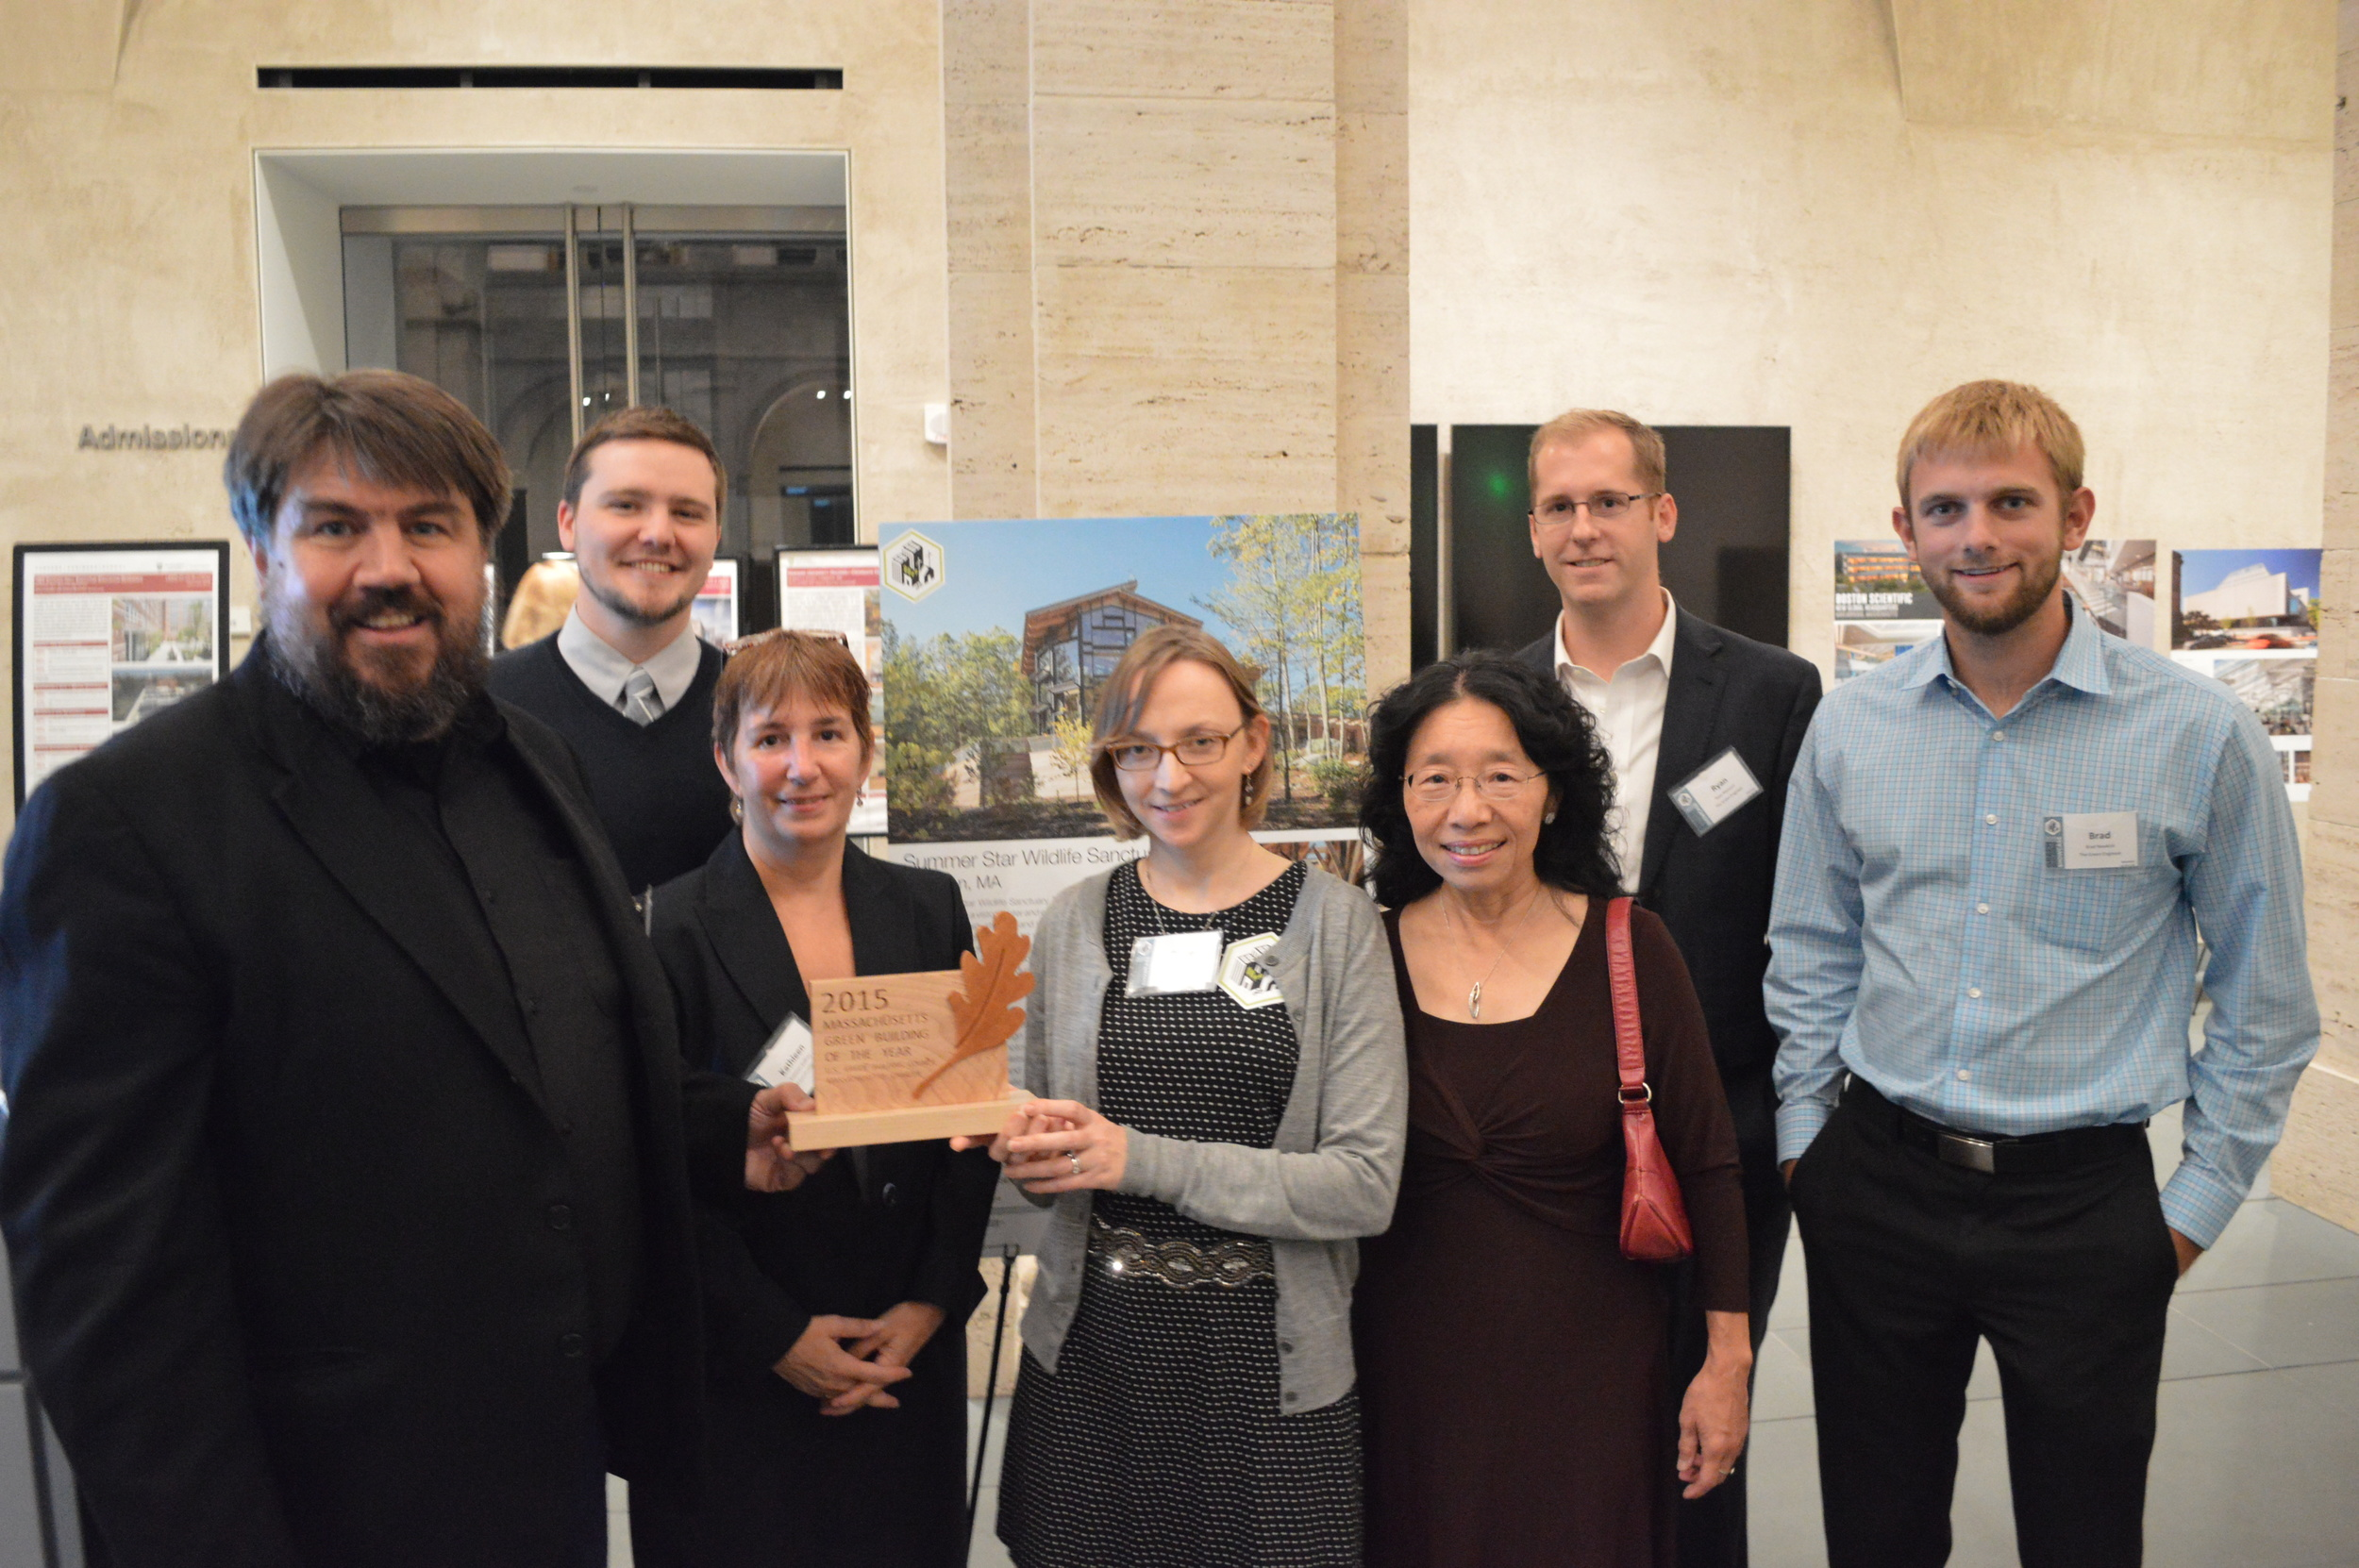 Representatives from The Green Engineer and Consigli Construction, accompanied by Project Owner, Shalin Lu (center right), proudly receive the USGBC Massachusetts 2015 Green Building Of The Year Award for the Summer Star Sanctuary Trailhead House in Boylston,MA.